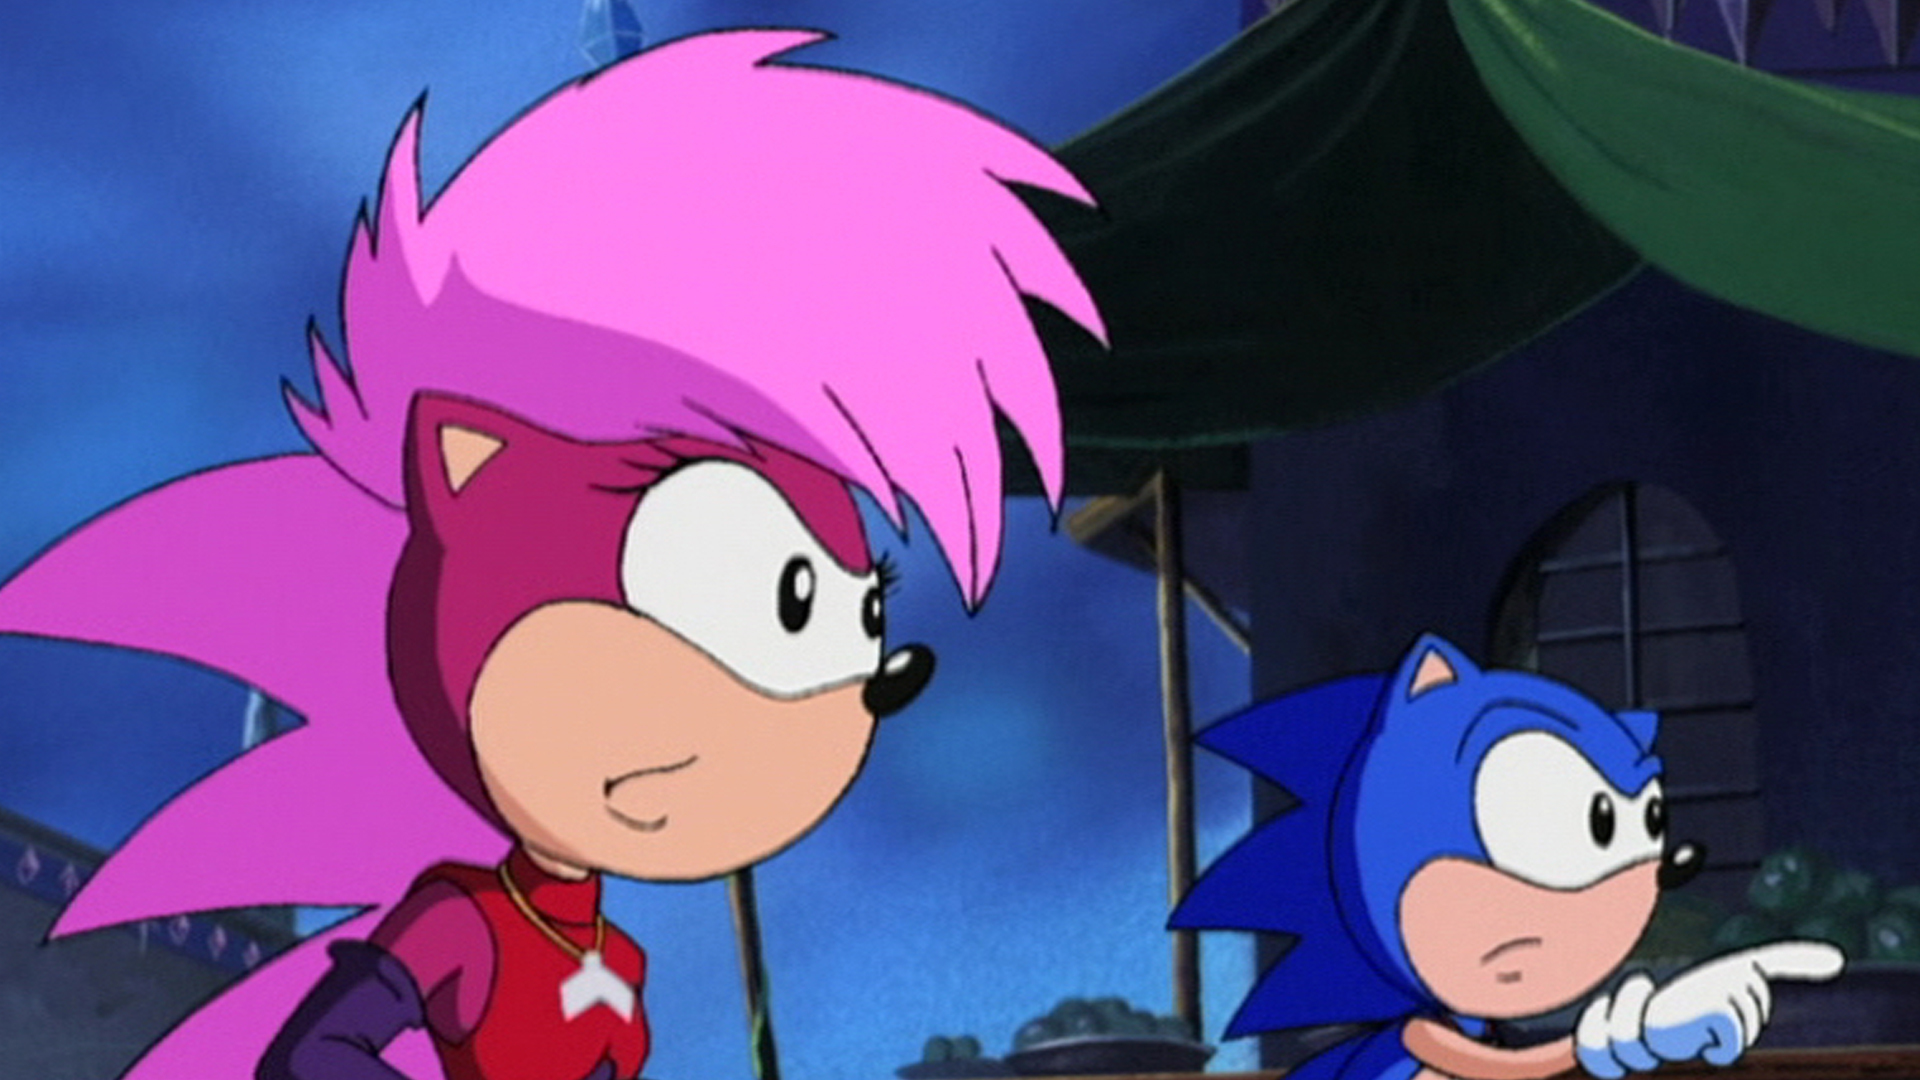 Watch Sonic Underground Season 1 Episode 8 Mobodoon Full Show On Cbs All Access